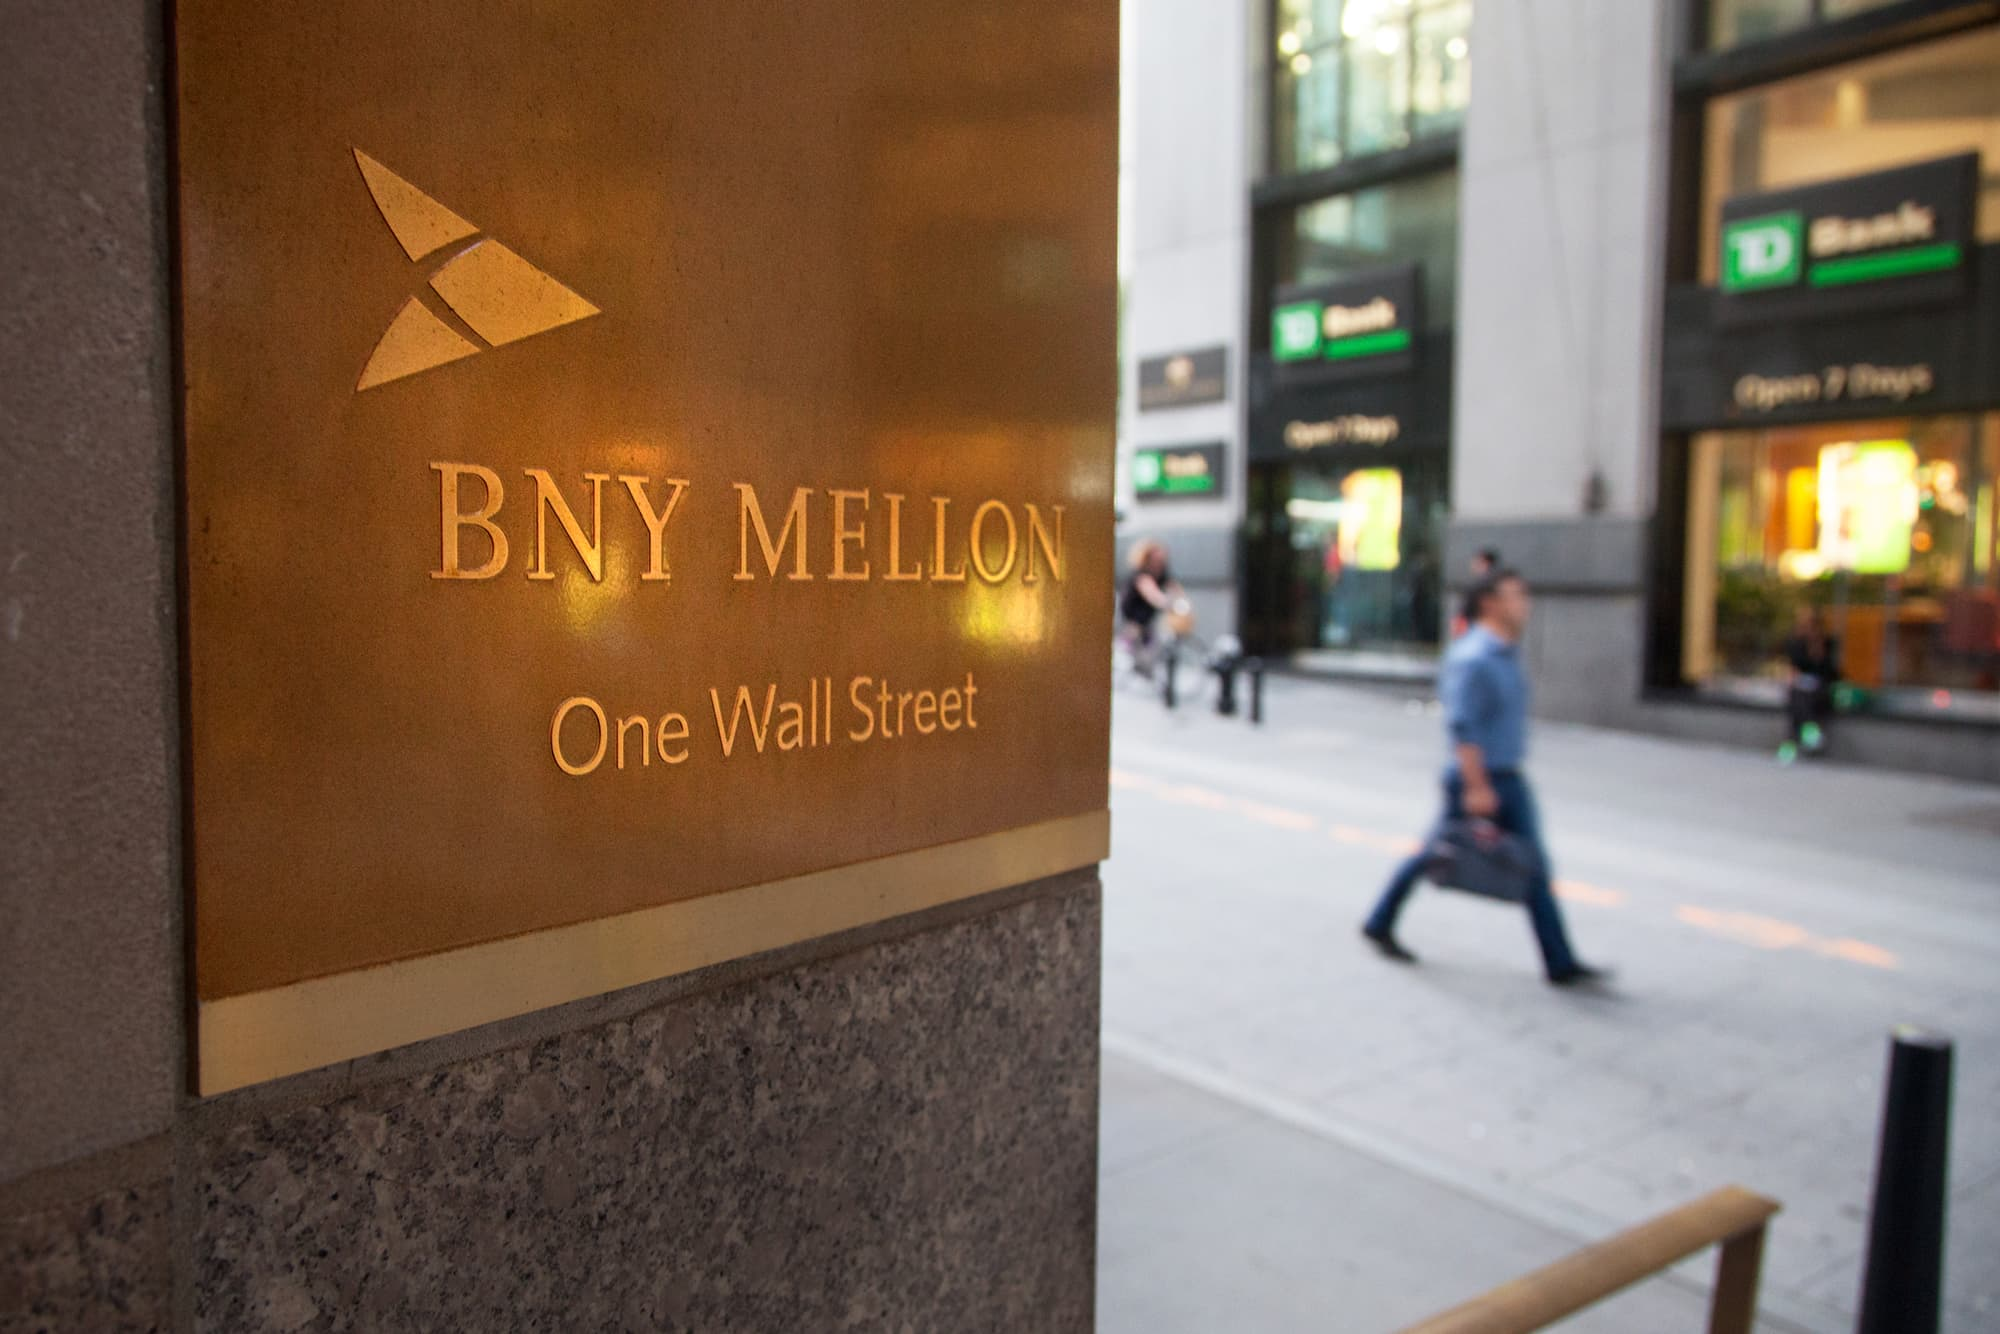 BNY Mellon to supply bitcoin providers, a validation of crypto from a key financial institution within the monetary system